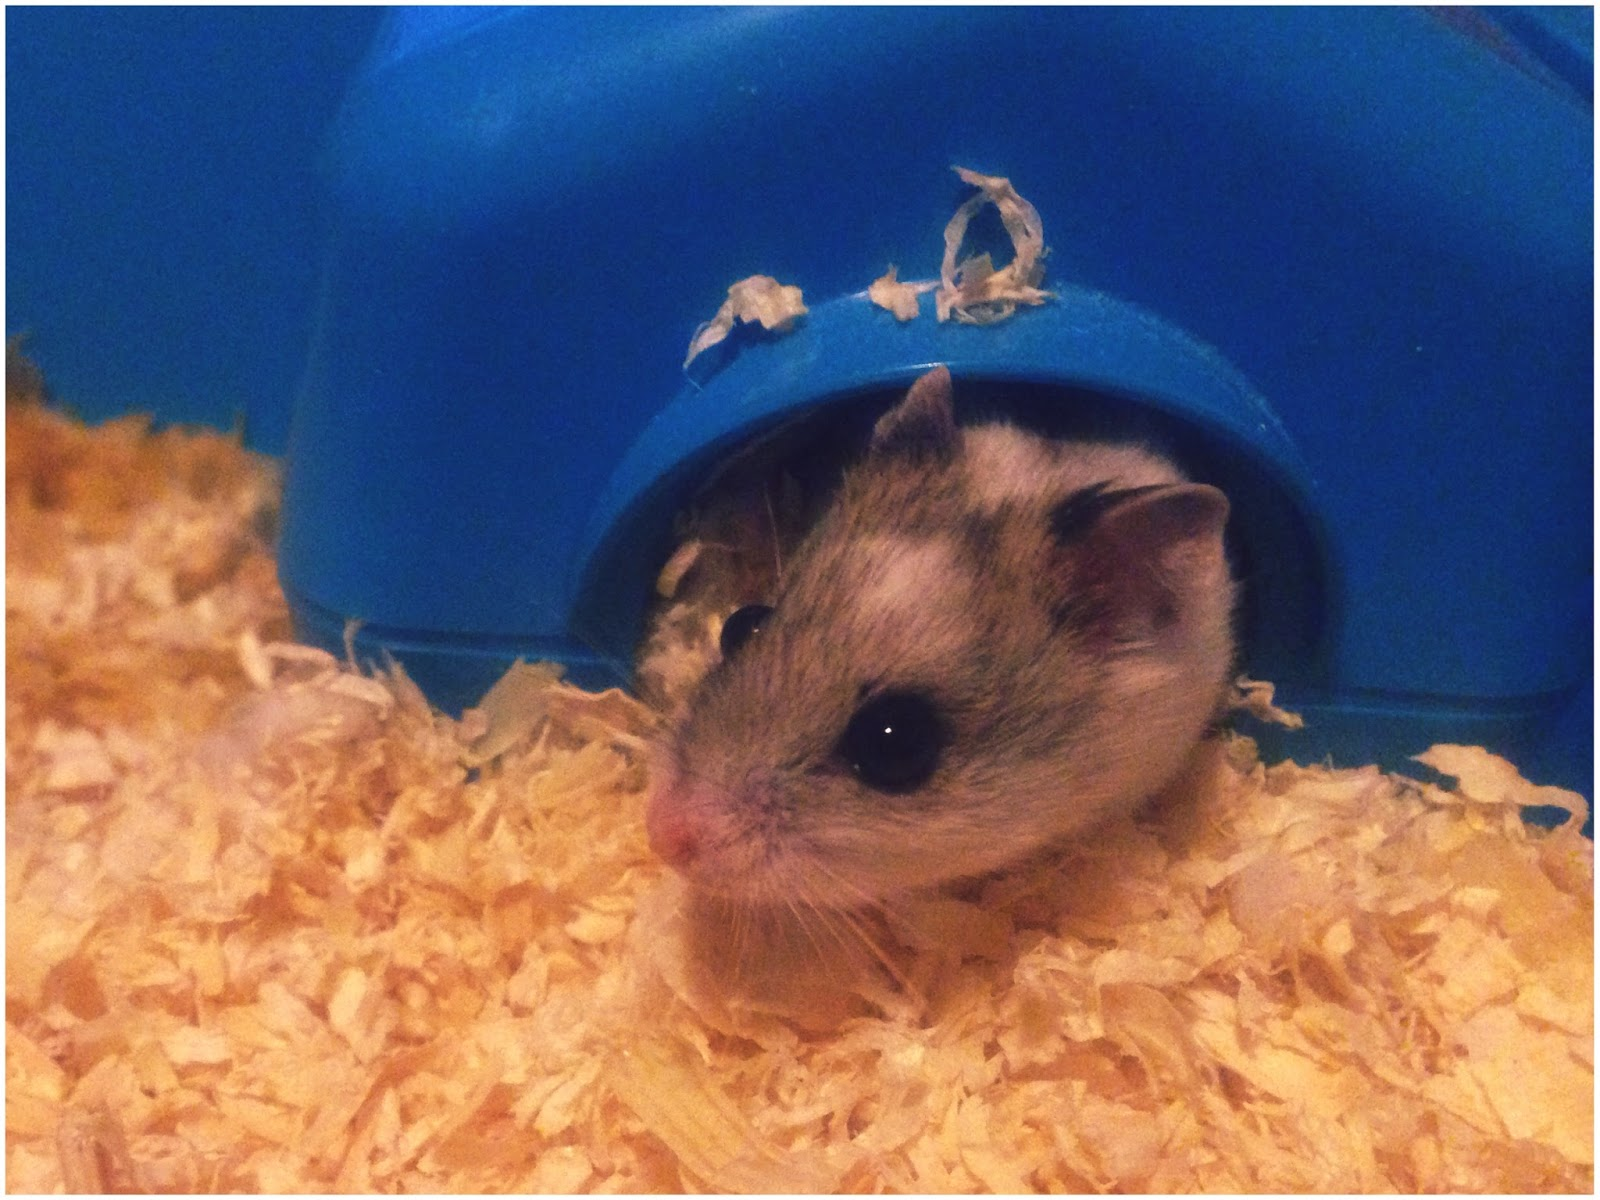 chinese dwarf hamster, pets at home, parent blogger, animals, pets, hamster, rodent, childrens photography, mini photographer, through my childs eyes,